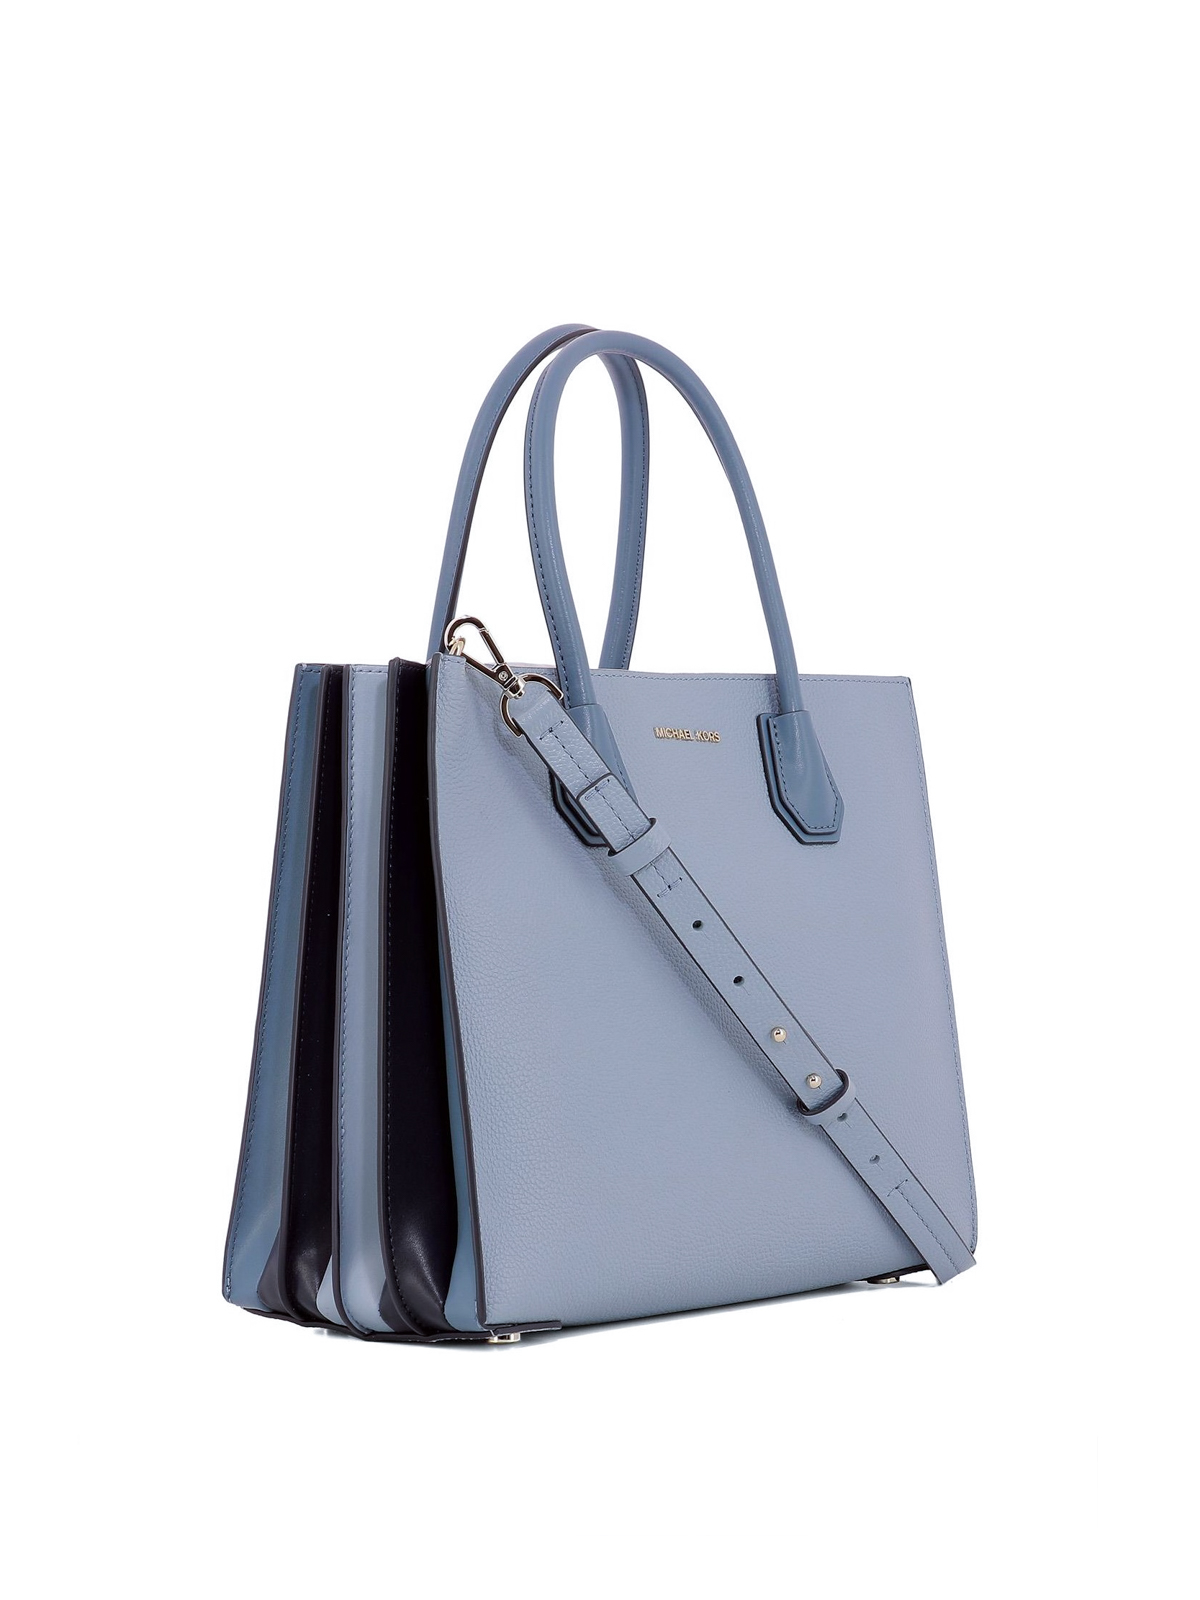 Michael Kors Totes Bags Online Mercer Large Light Blue Accordion Tote